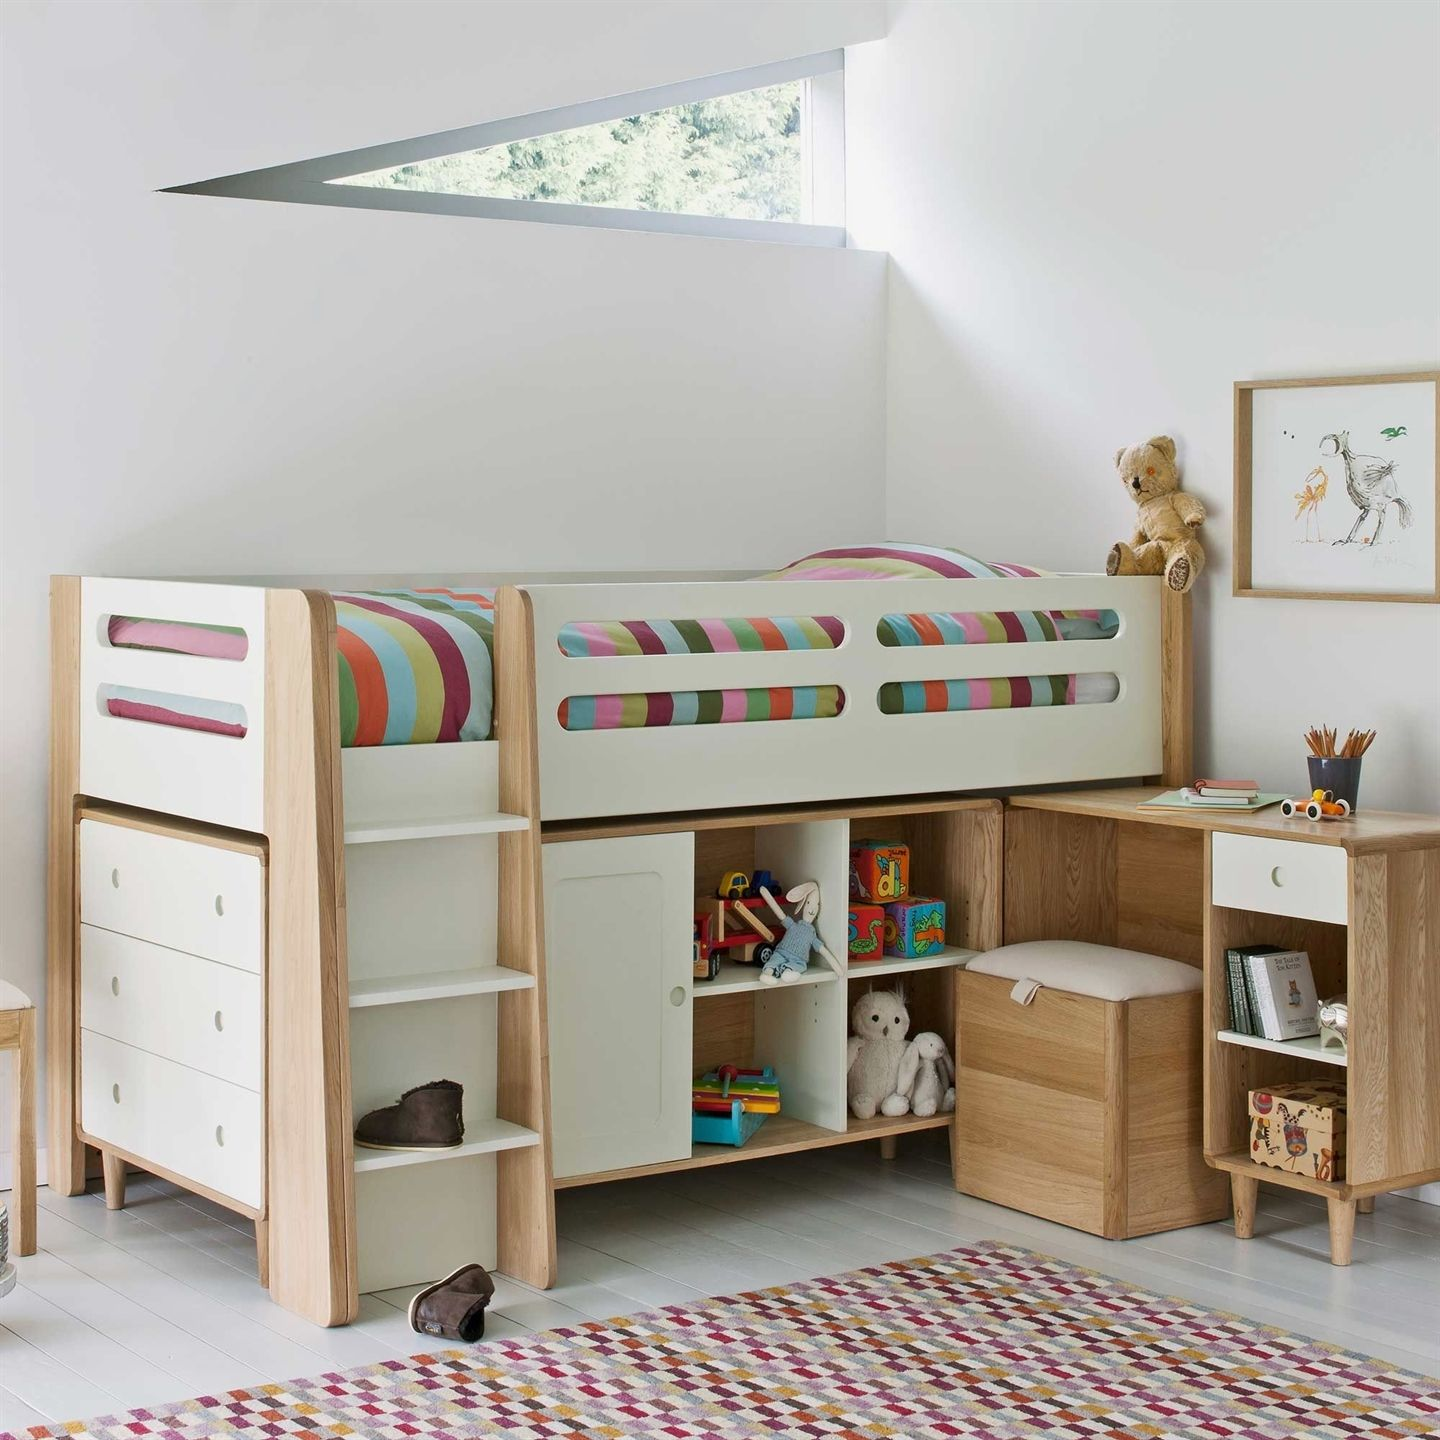 Cute loft bed ideas  Eden cm Cabin Bed available online at Barker u Stonehouse Browse